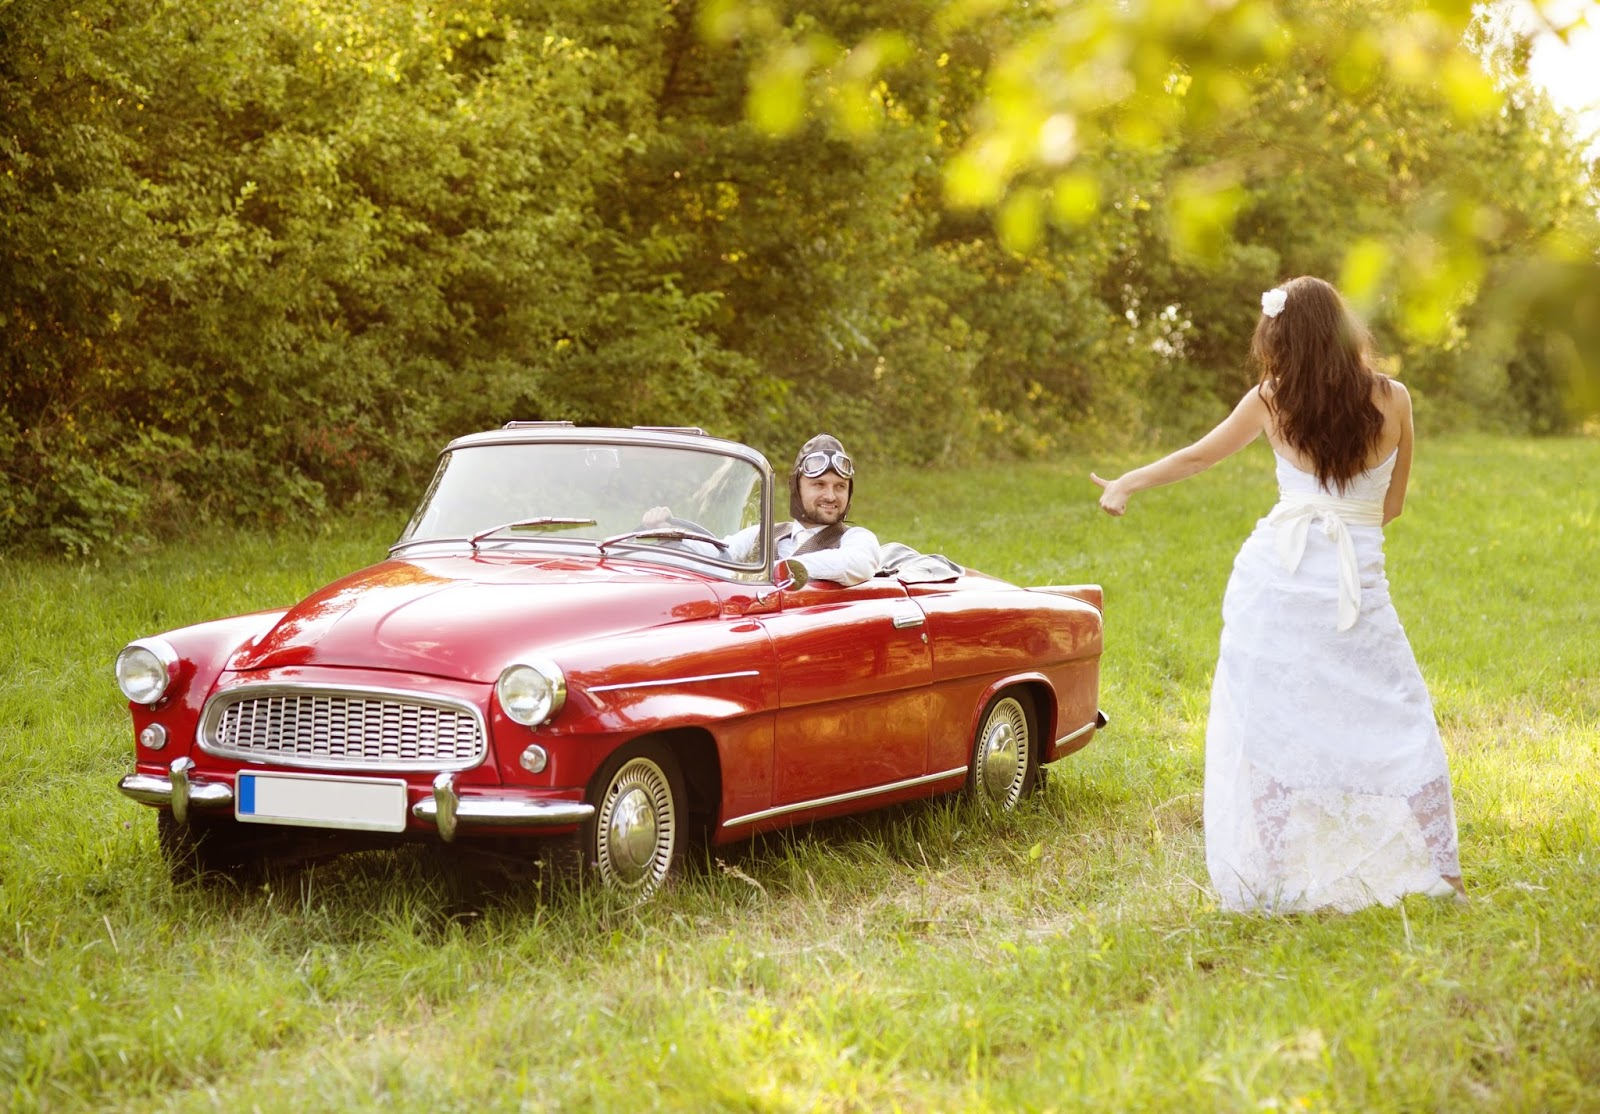 Rustic 4 Weddings: Classic Car Wedding Photography Shoot